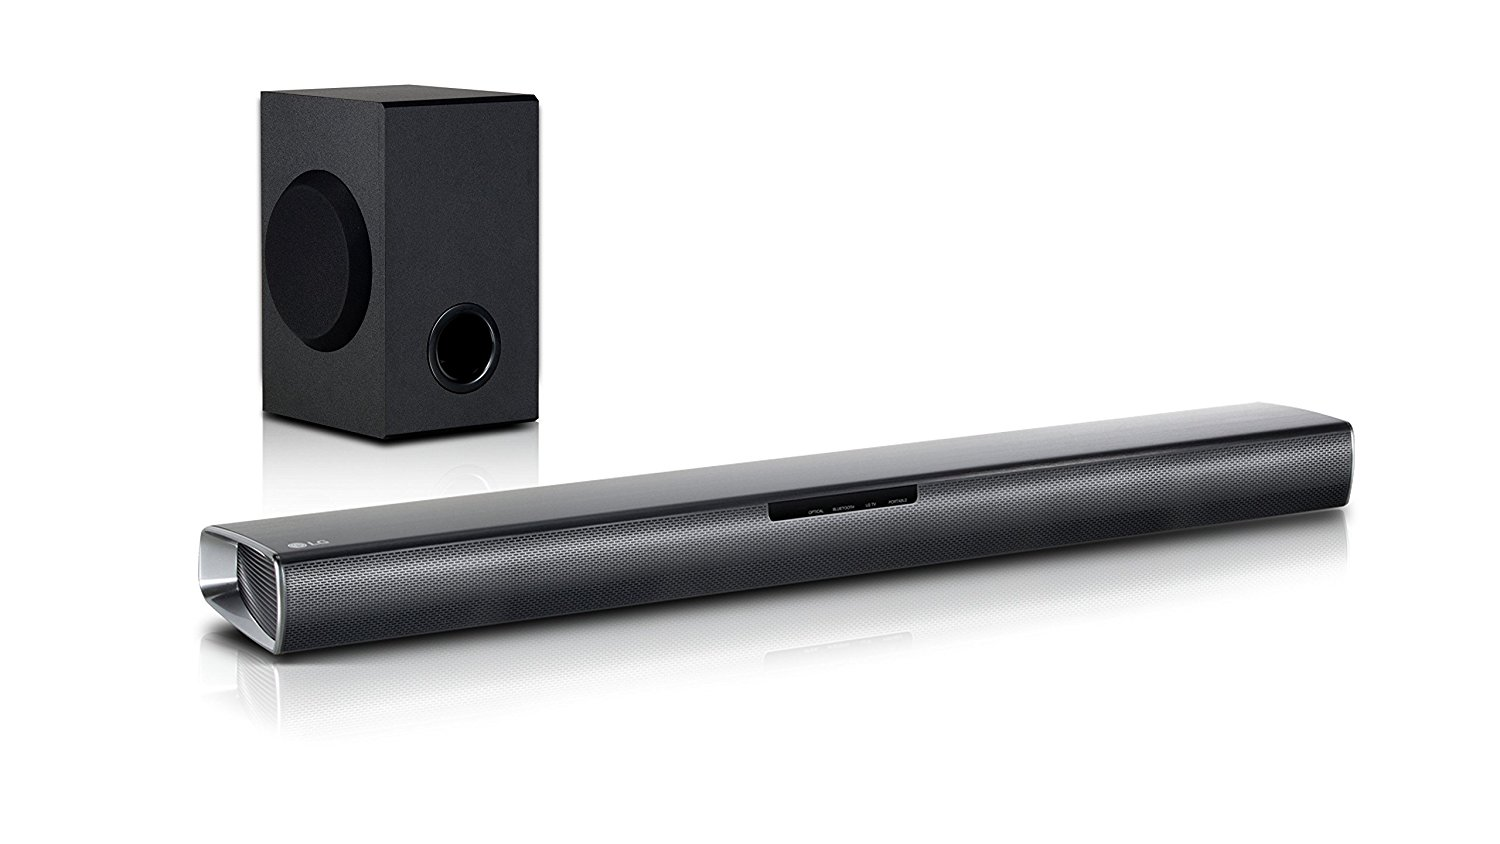 LG Soundbar amazon Tagesangebot